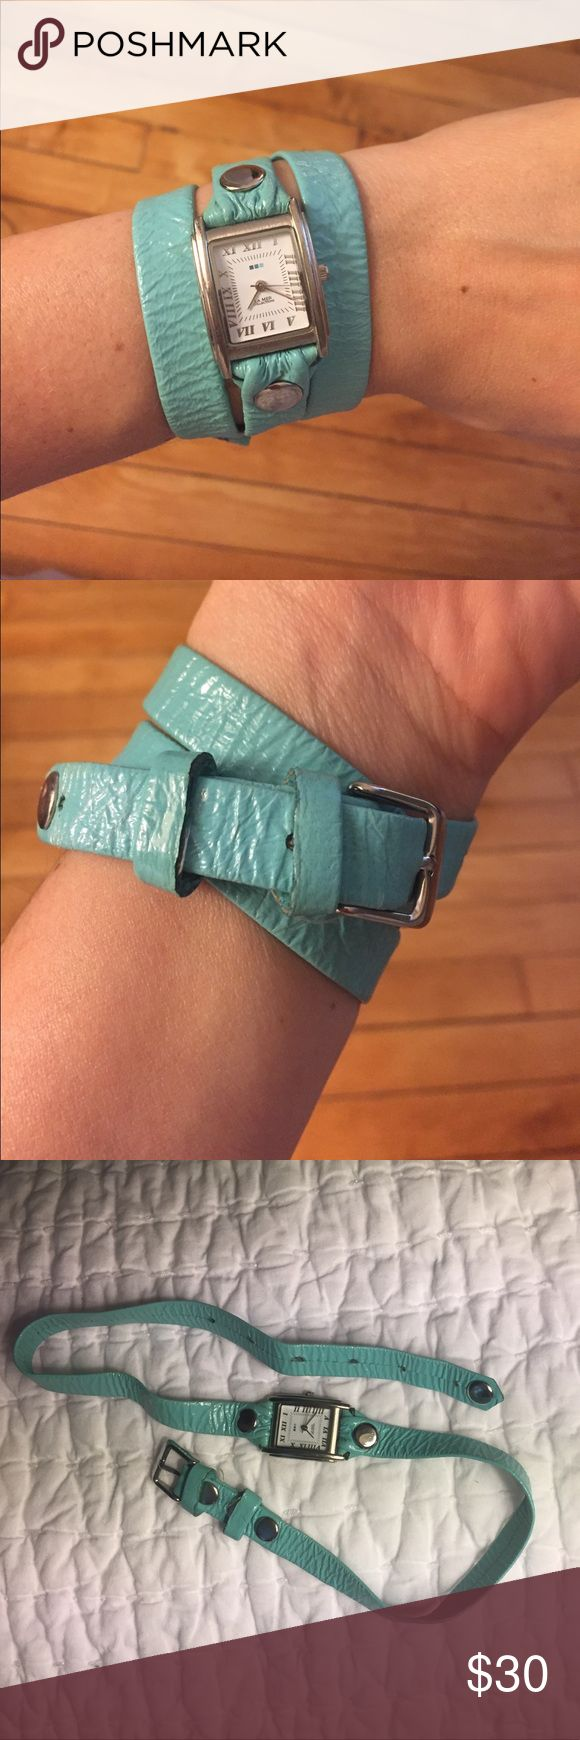 La Mer Turquoise Wrap Watch Super cute and trendy watch! It isn't new but is still in great condition, besides needing a new battery. La Mer Accessories Watches